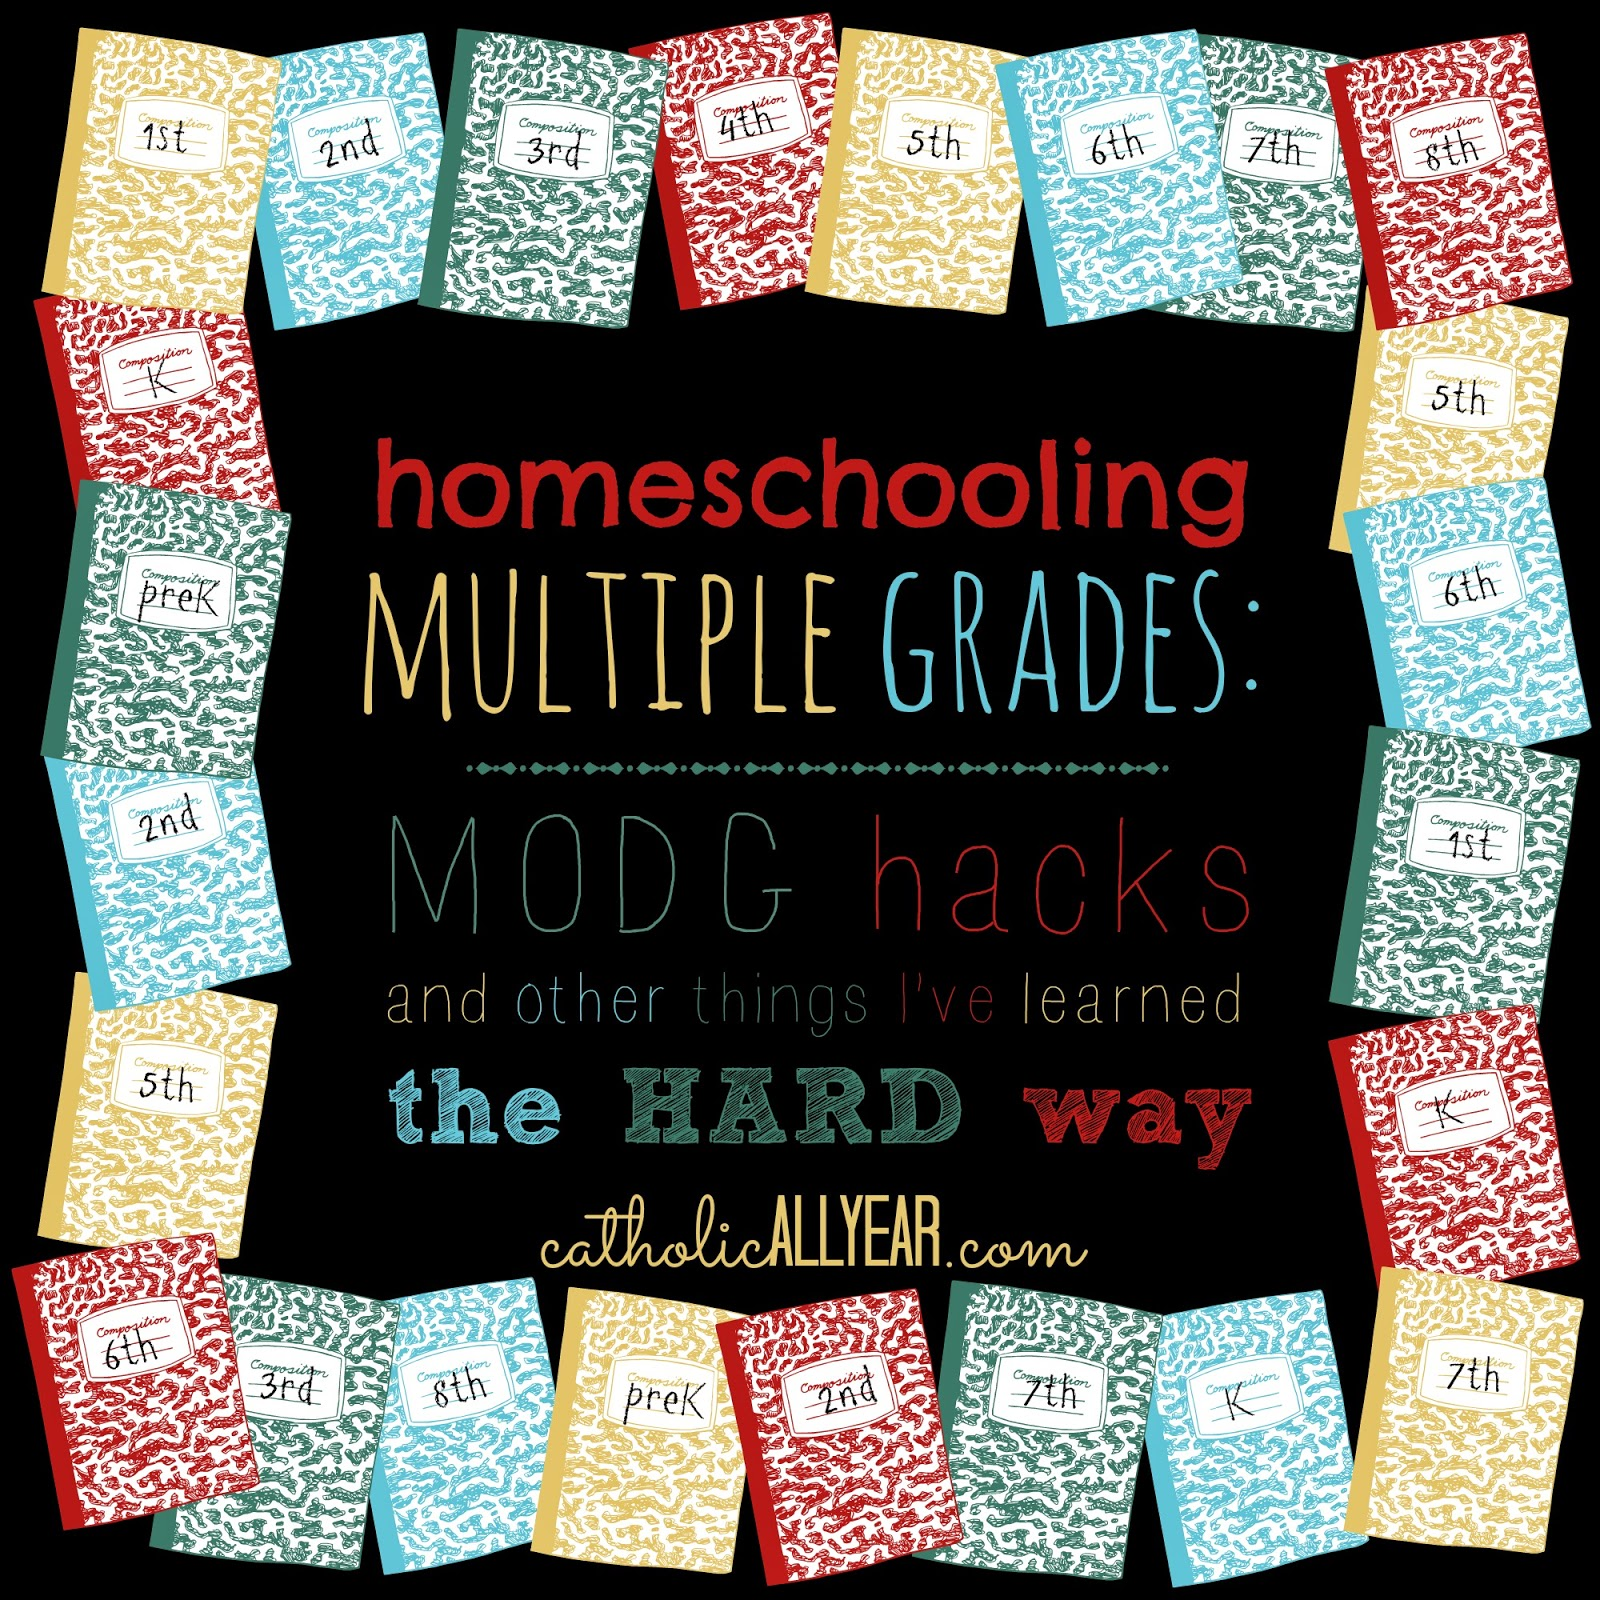 hight resolution of Homeschooling Multiple Grades: MODG hacks and other things I've learned the  hard way - Catholic All Year